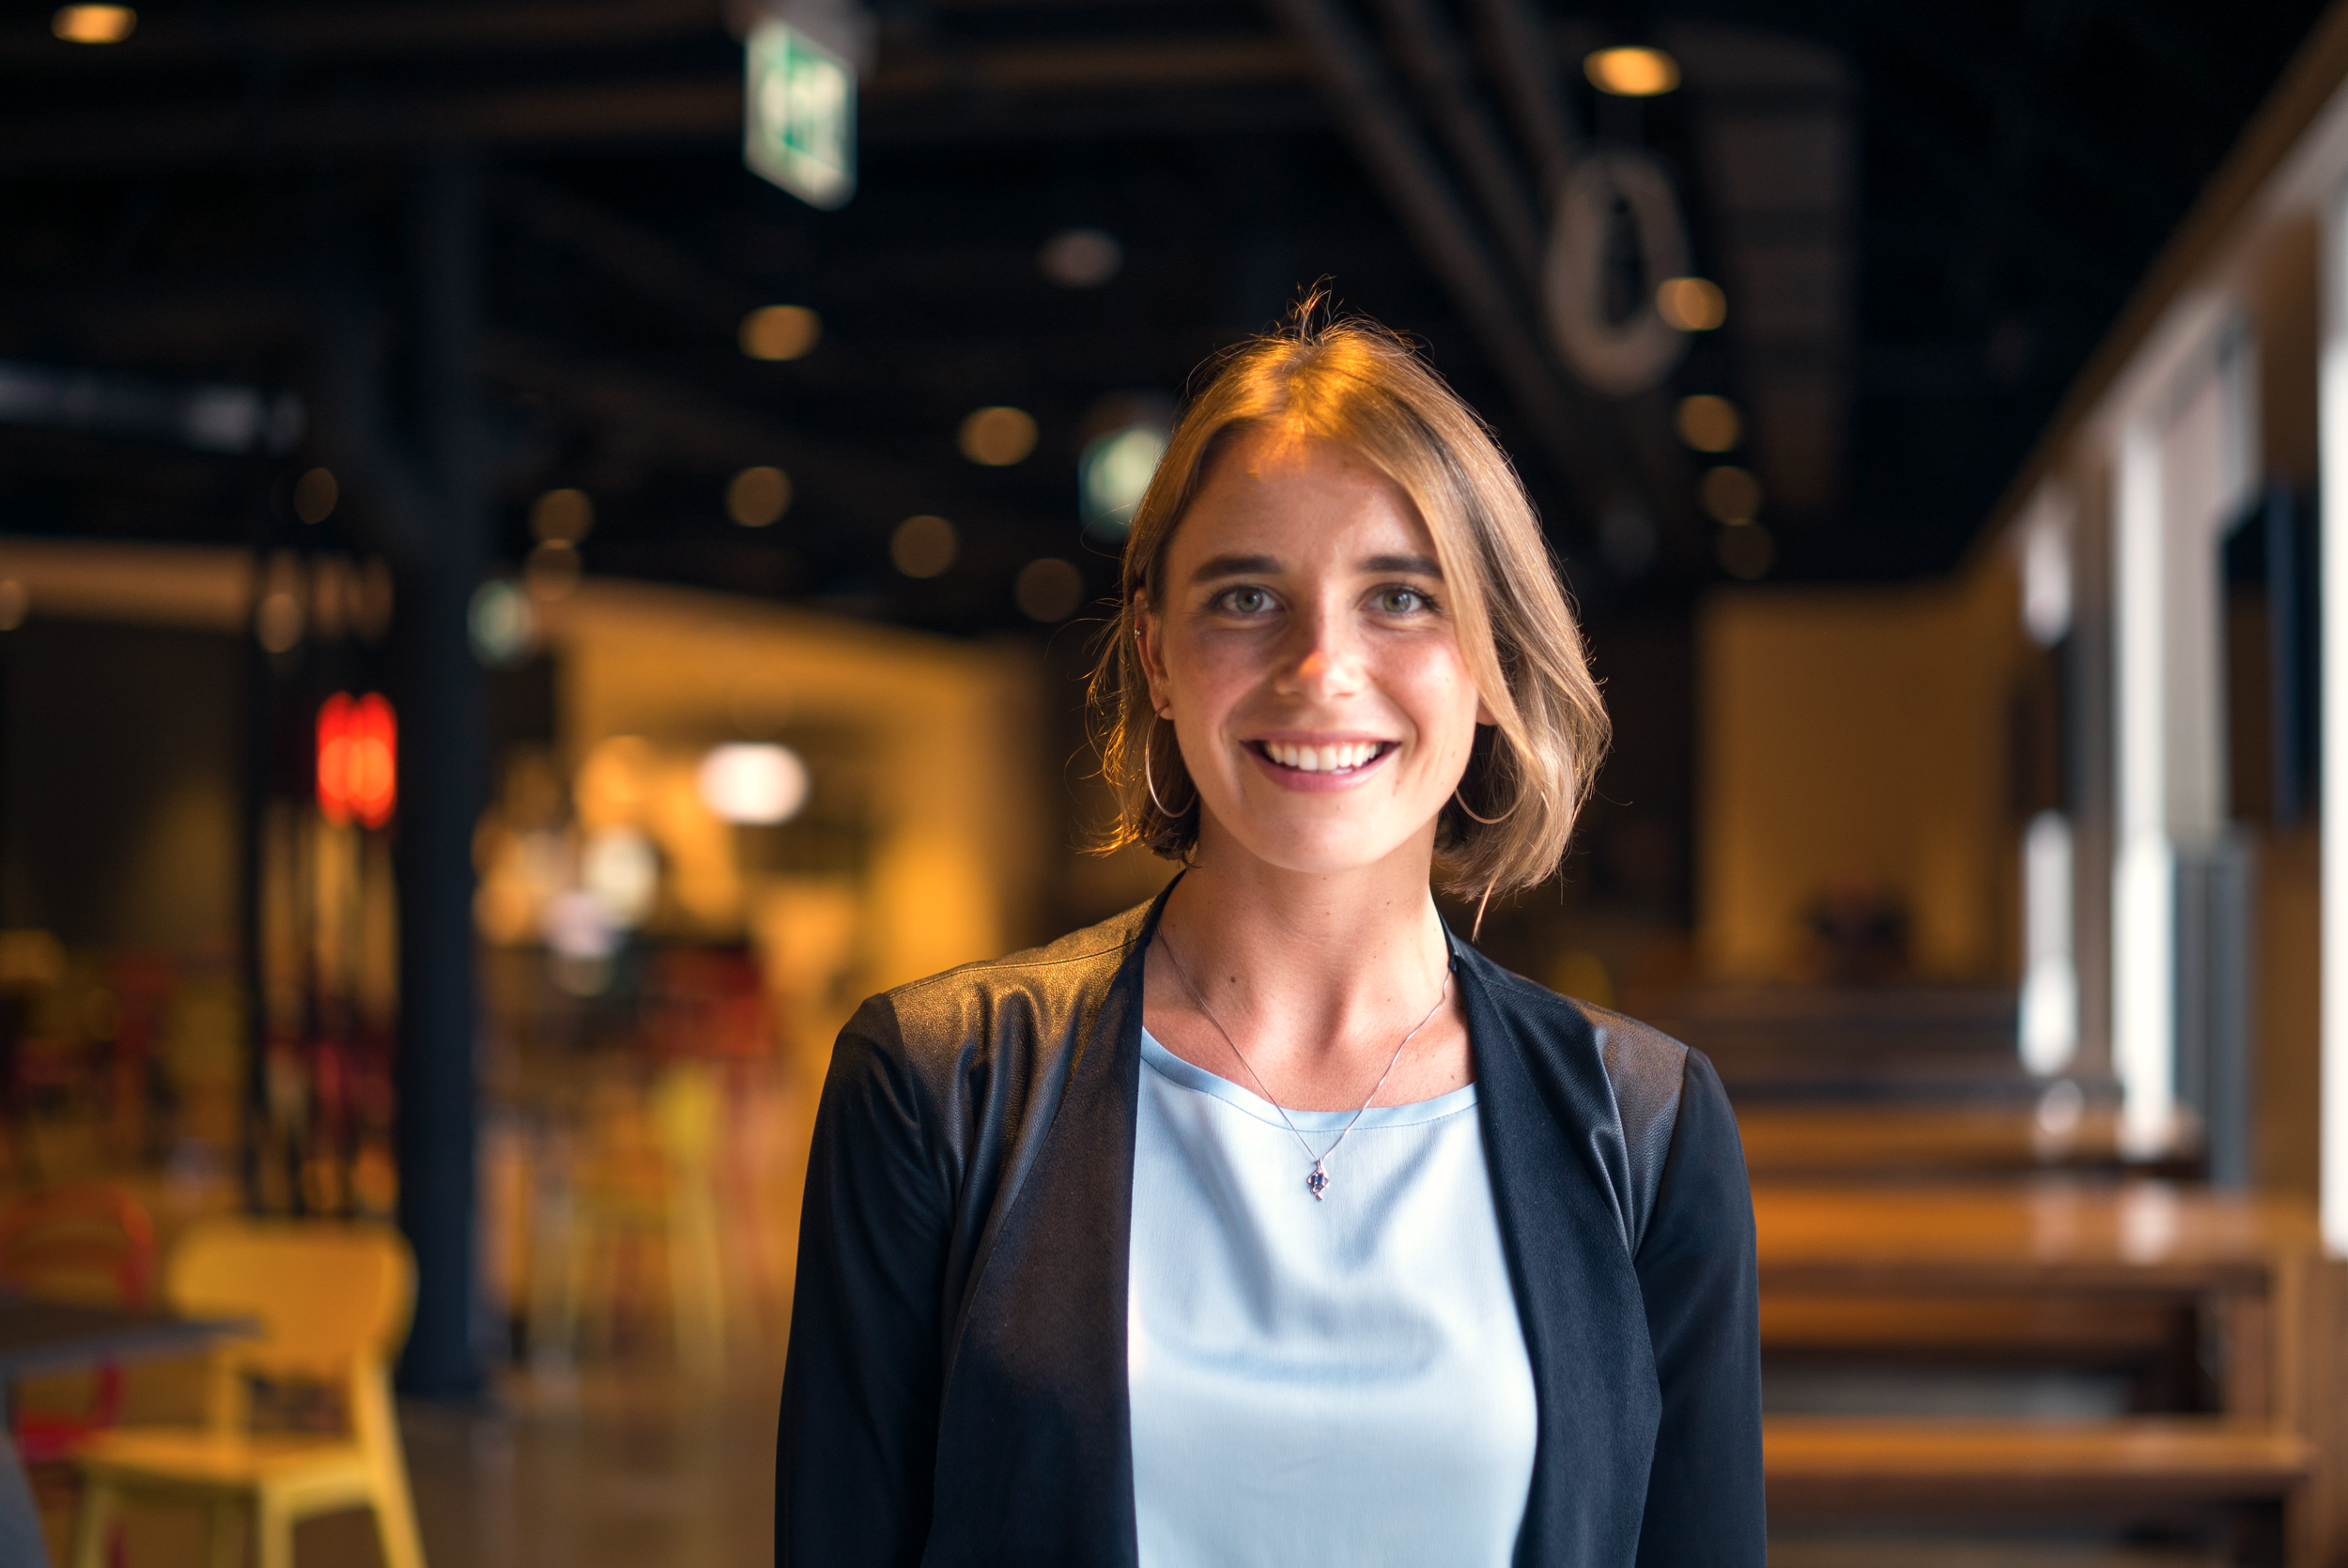 Jen is a User Experience Designer at Scotiabank Digital Factory, working on Search and conversational UI.